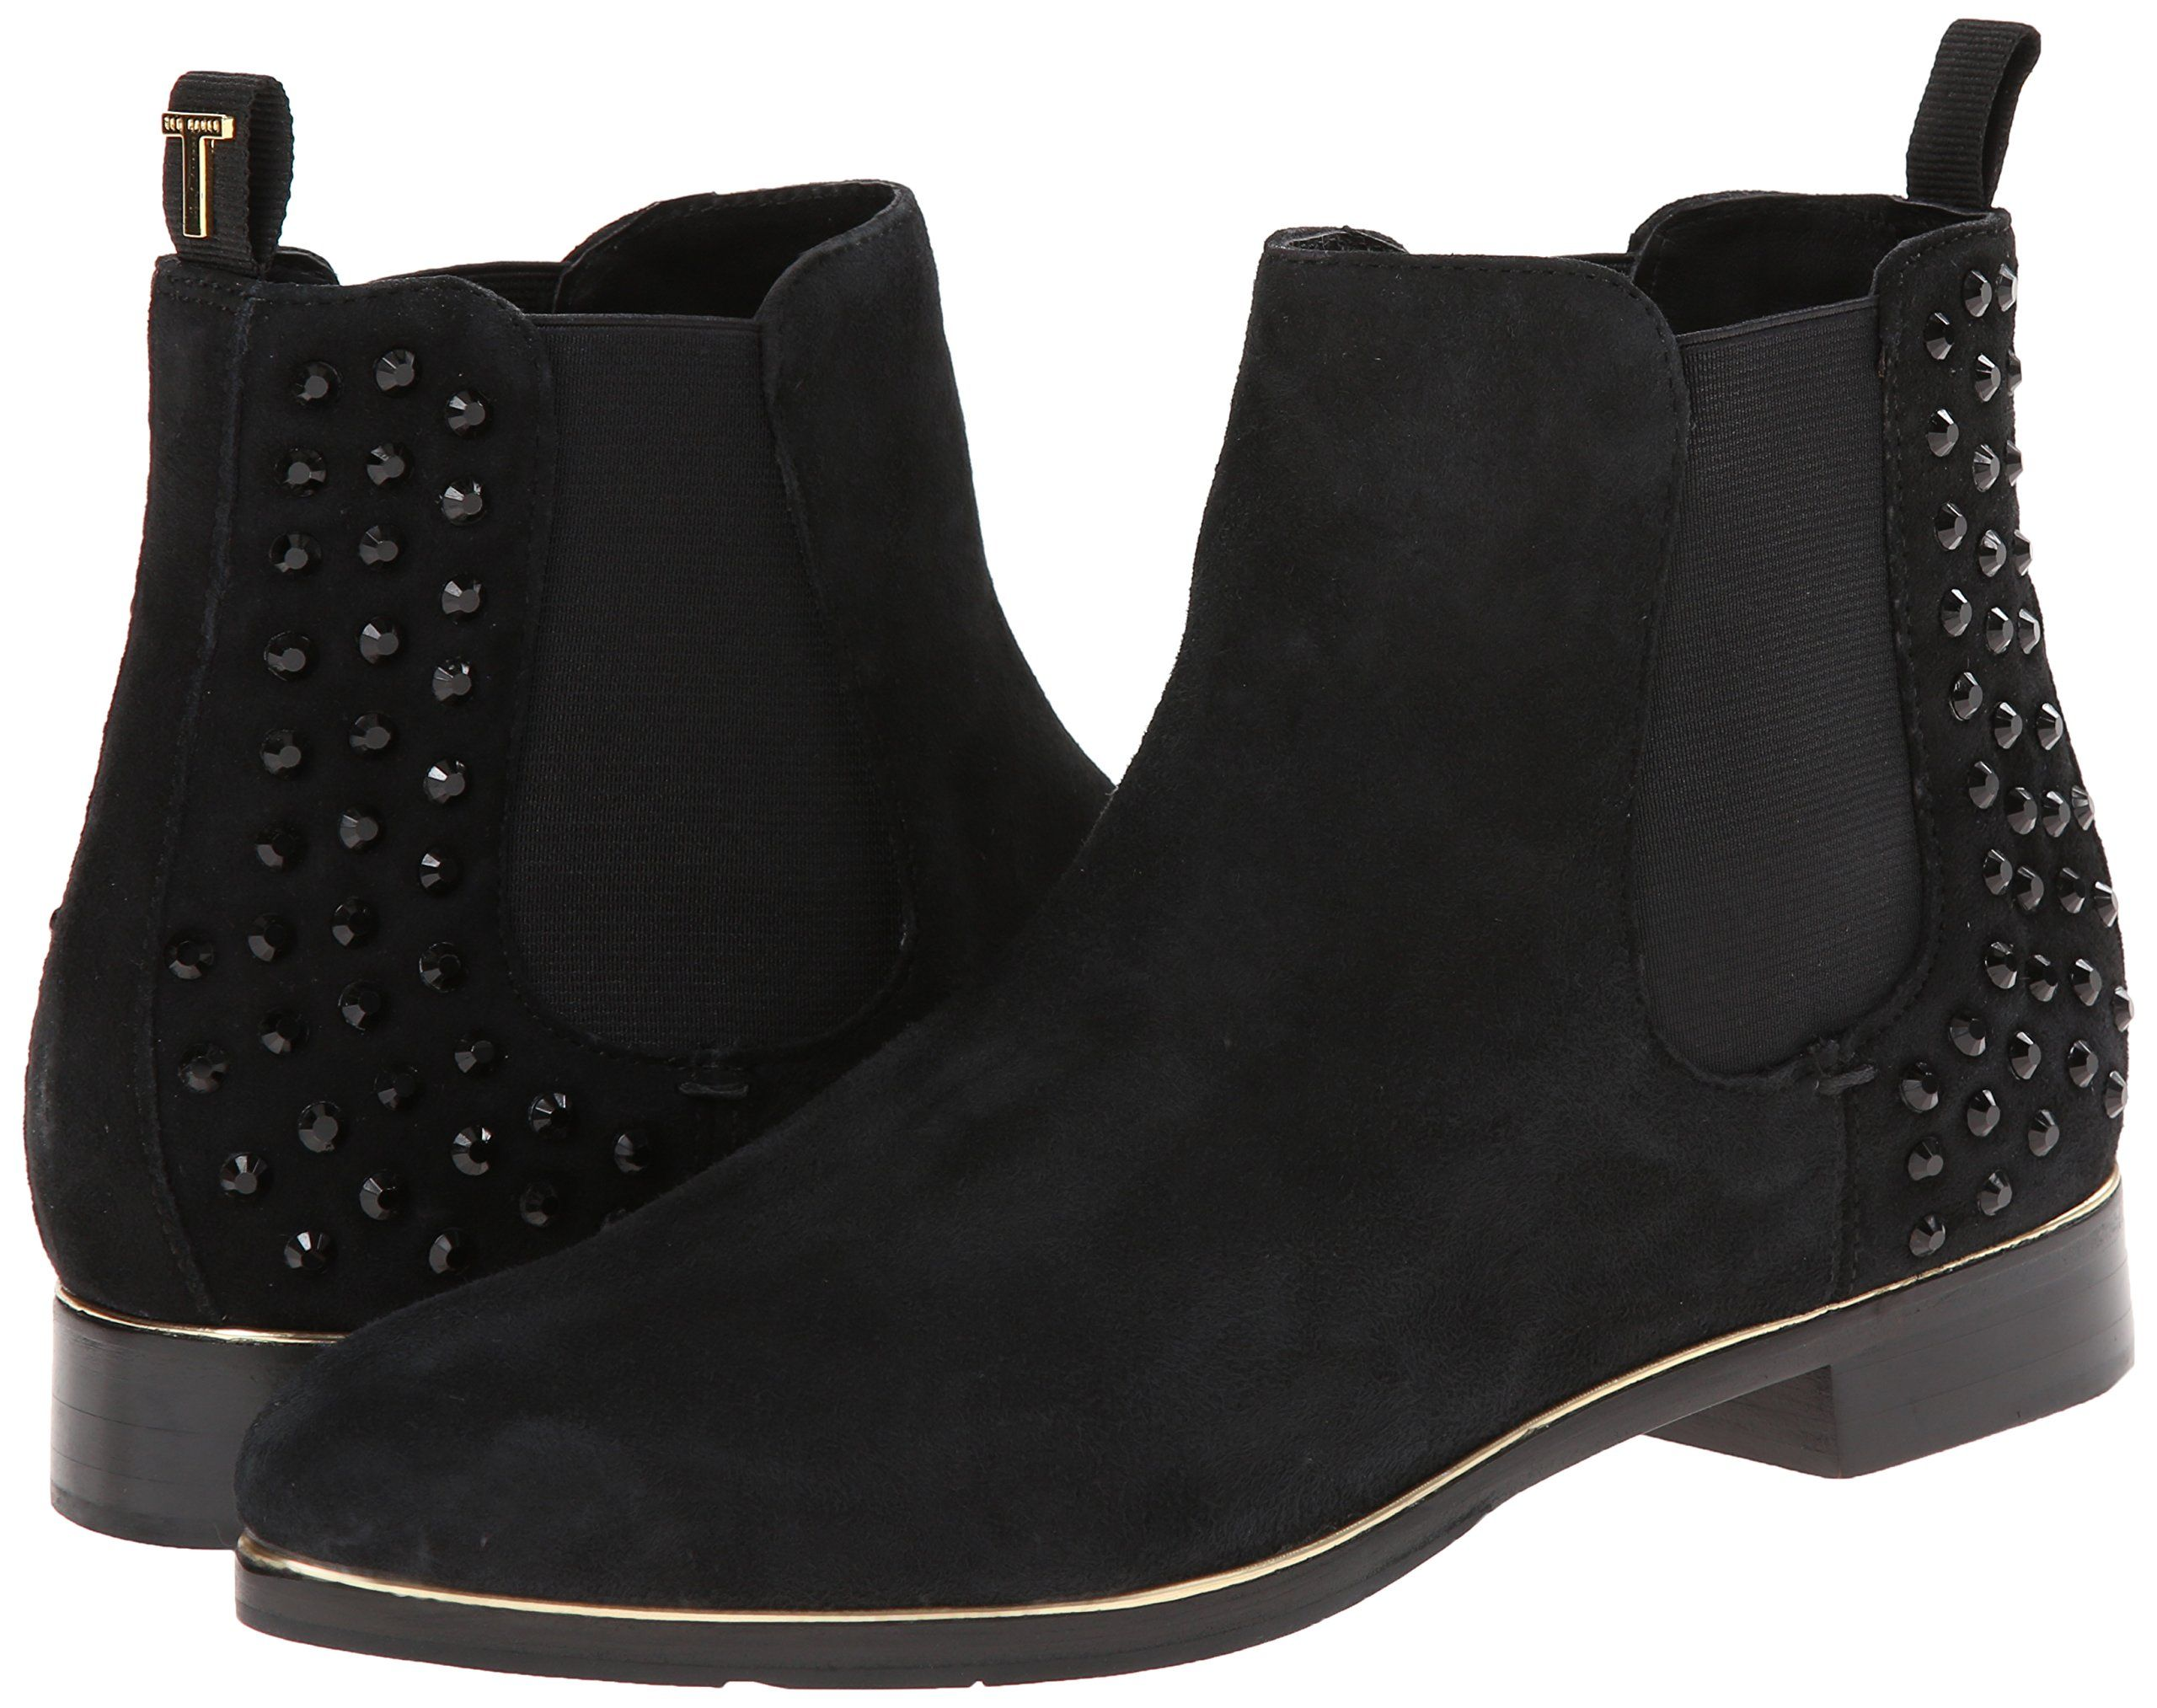 Ted baker womens, Boots, Chelsea boots